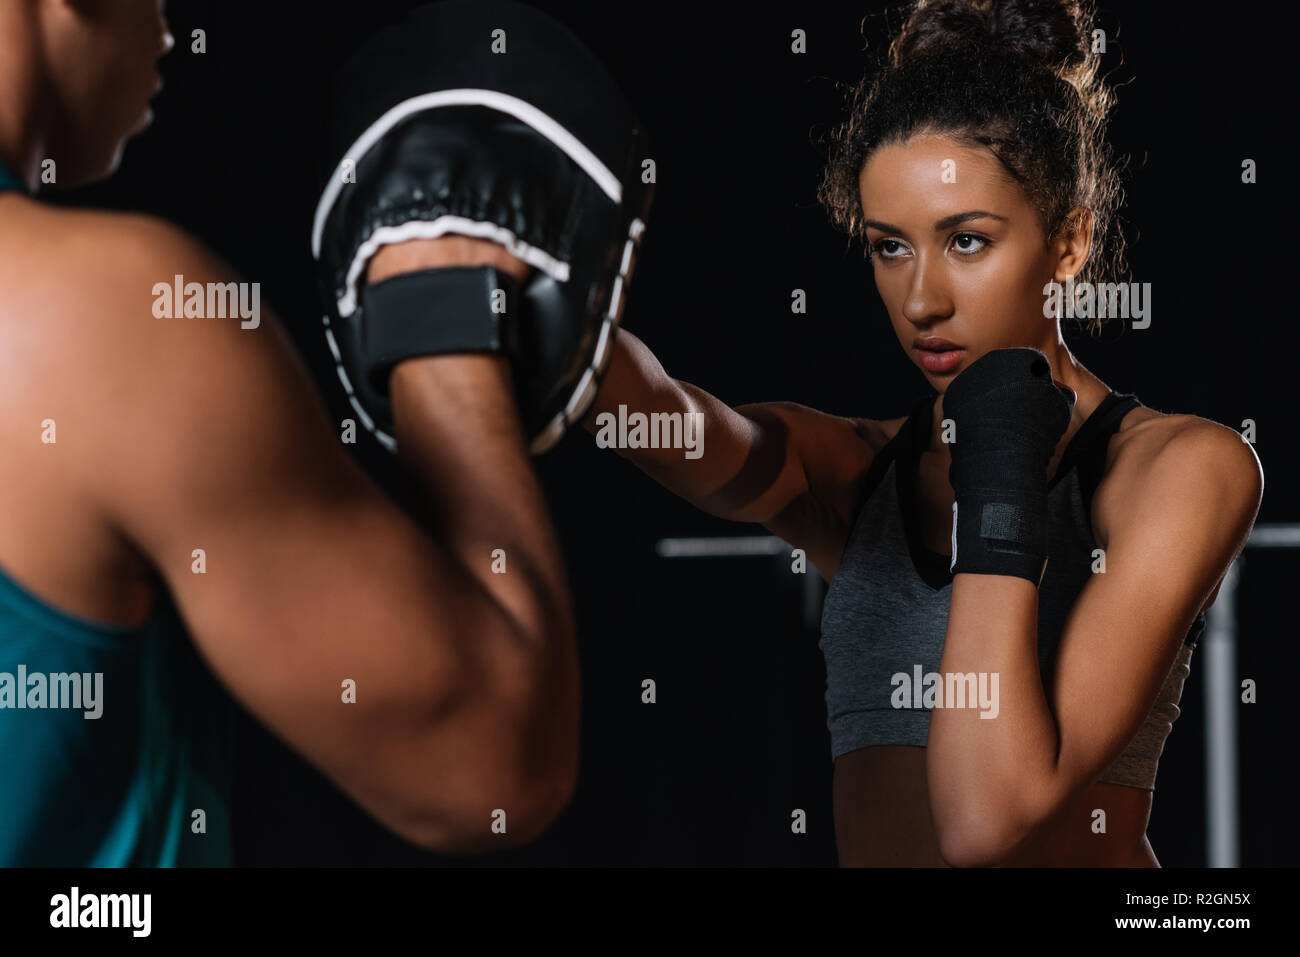 Personal Trainer African American Stock Photos  Personal -1079